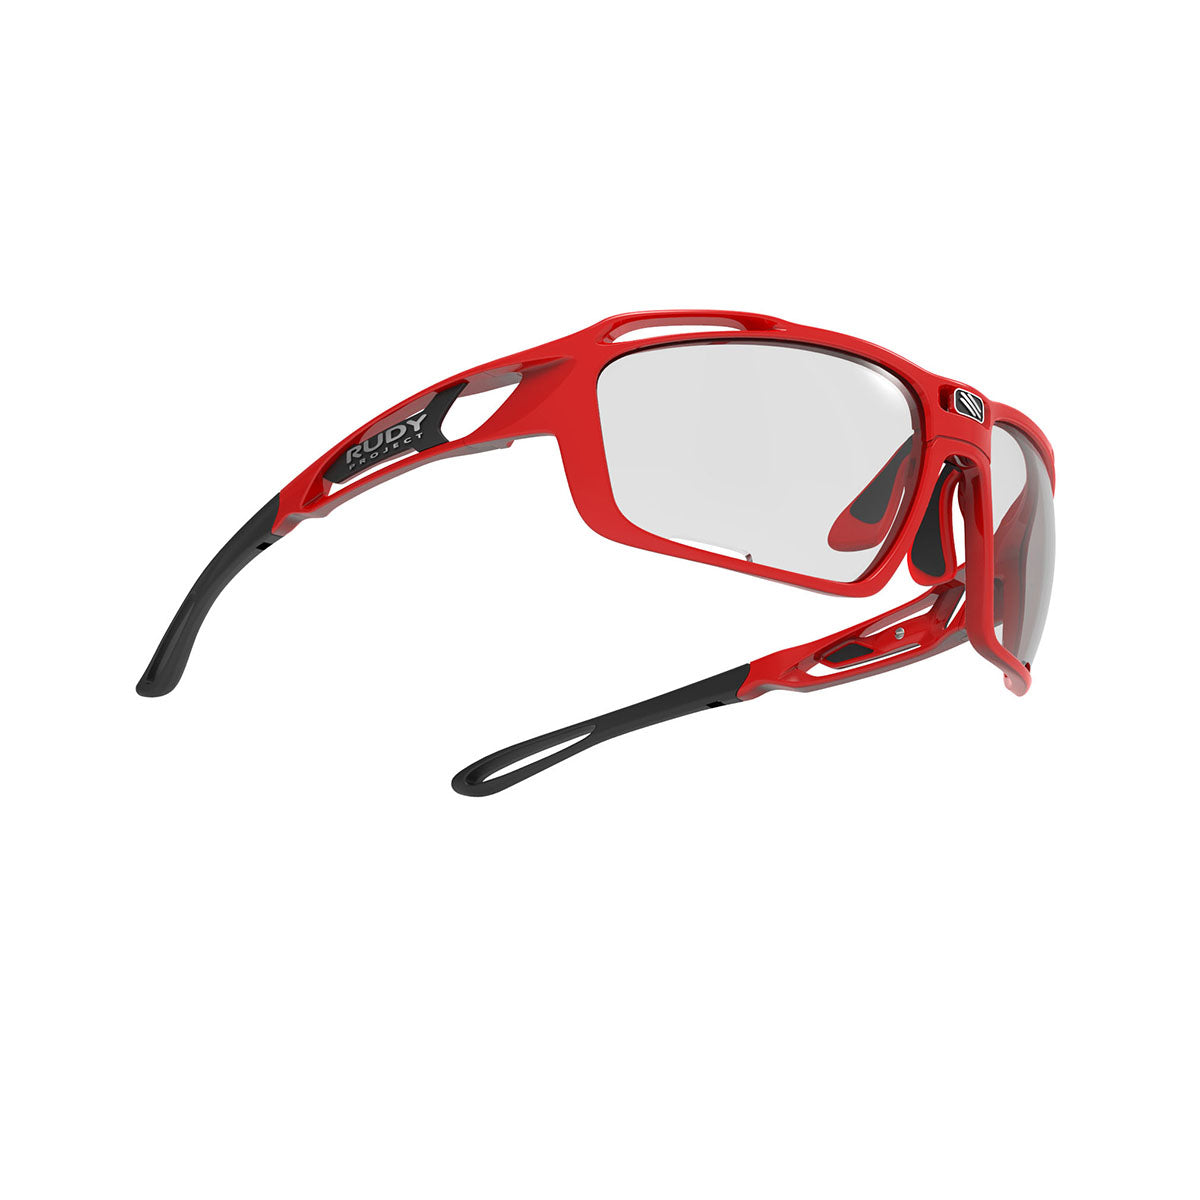 Rudy Project - Sintryx - frame color: Fire Red Gloss - lens color: ImpactX-2 Photochromic Clear to Black - Bumper Color:  - photo angle: Bottom Front Angle Variant Hover Image